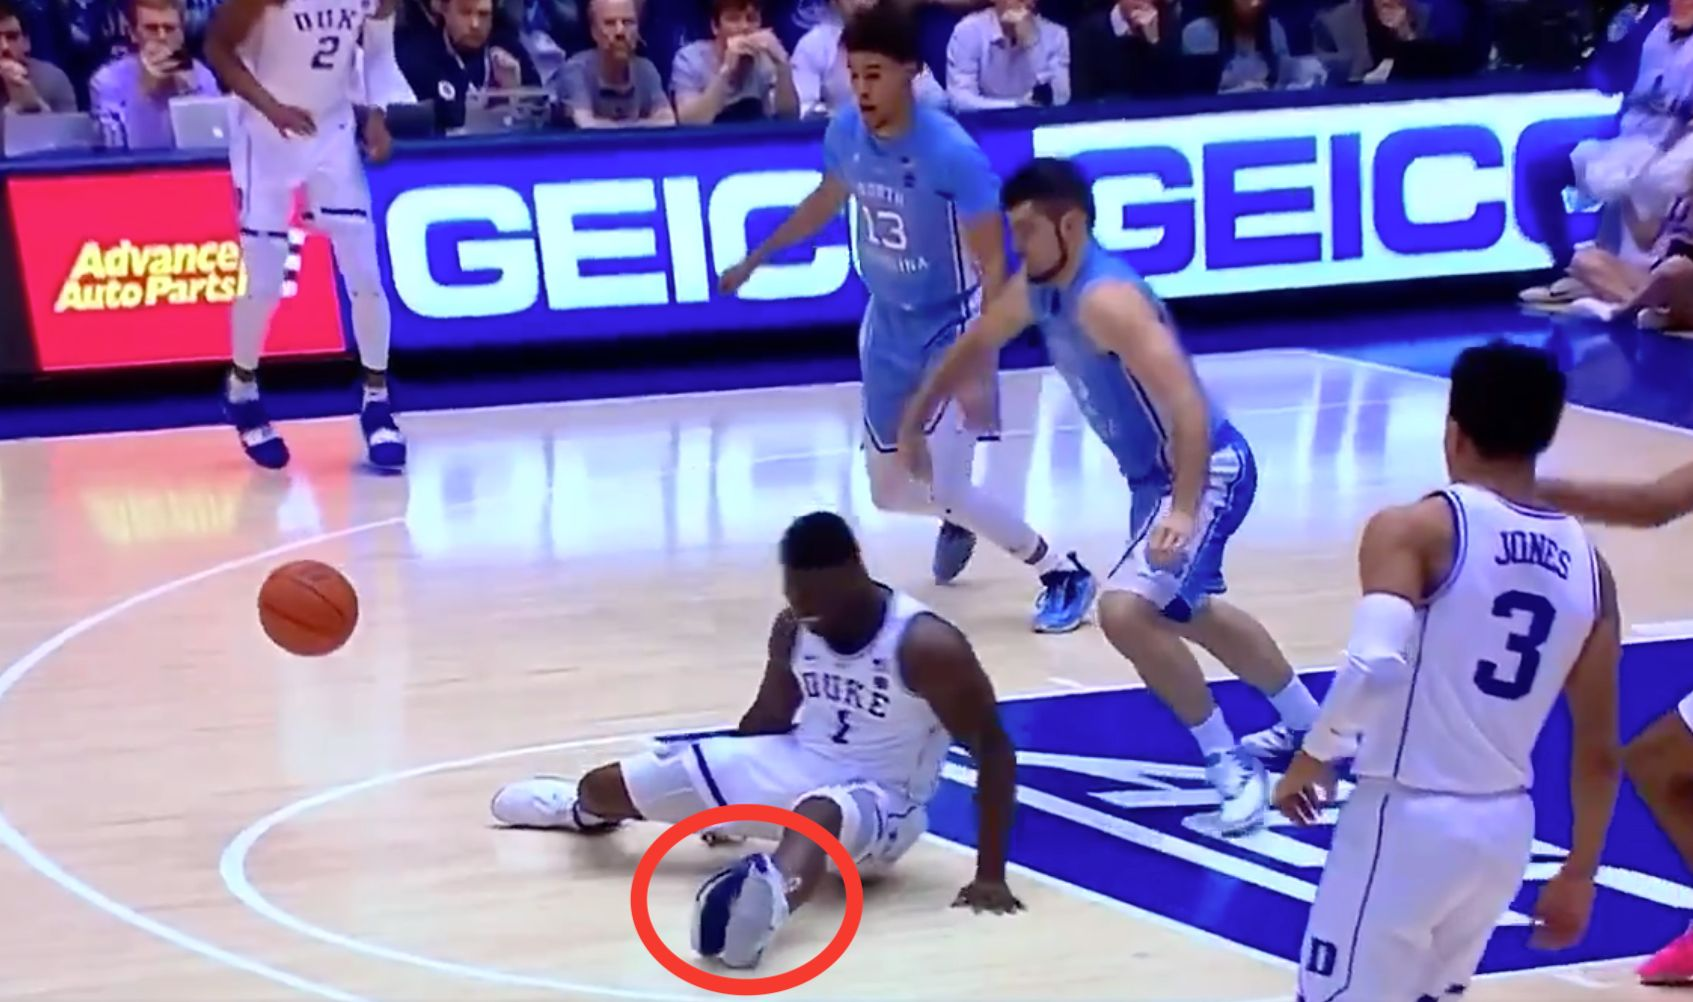 Zion Williamson's Nike Basketball Shoe Blows Out In The Most Brutal Way 5c6e63a436000039106afc4b